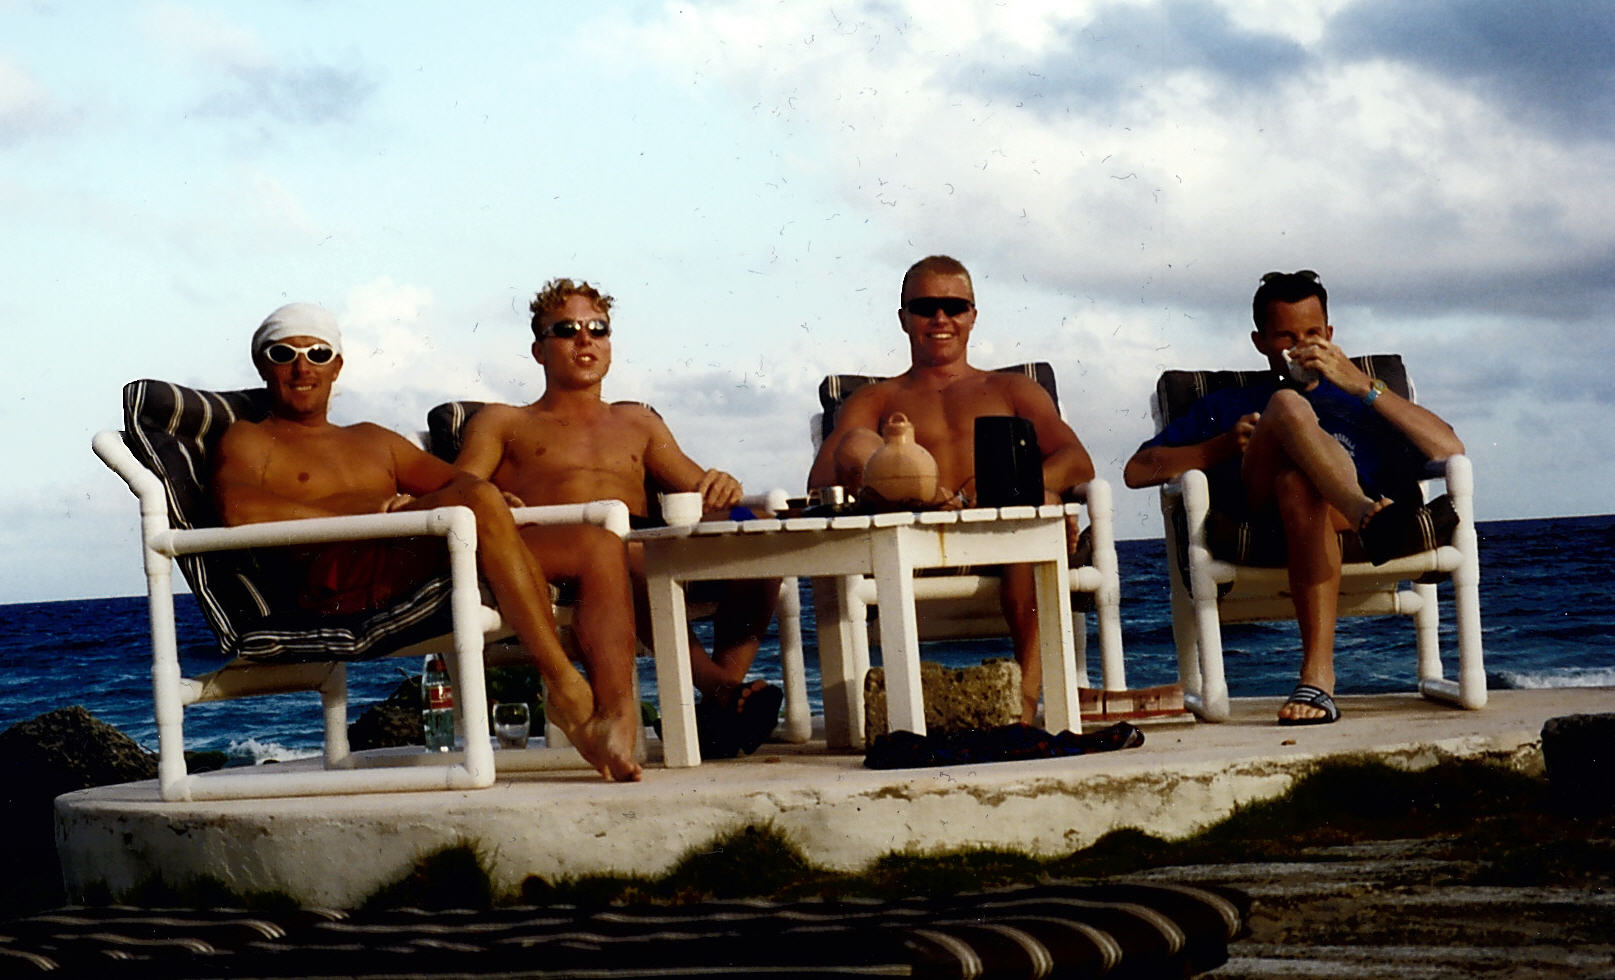 Pete, with Craig MacLean, Chris Hoy, and VeloVeritas Editor Martin, chilling out in Barbados after the racing.